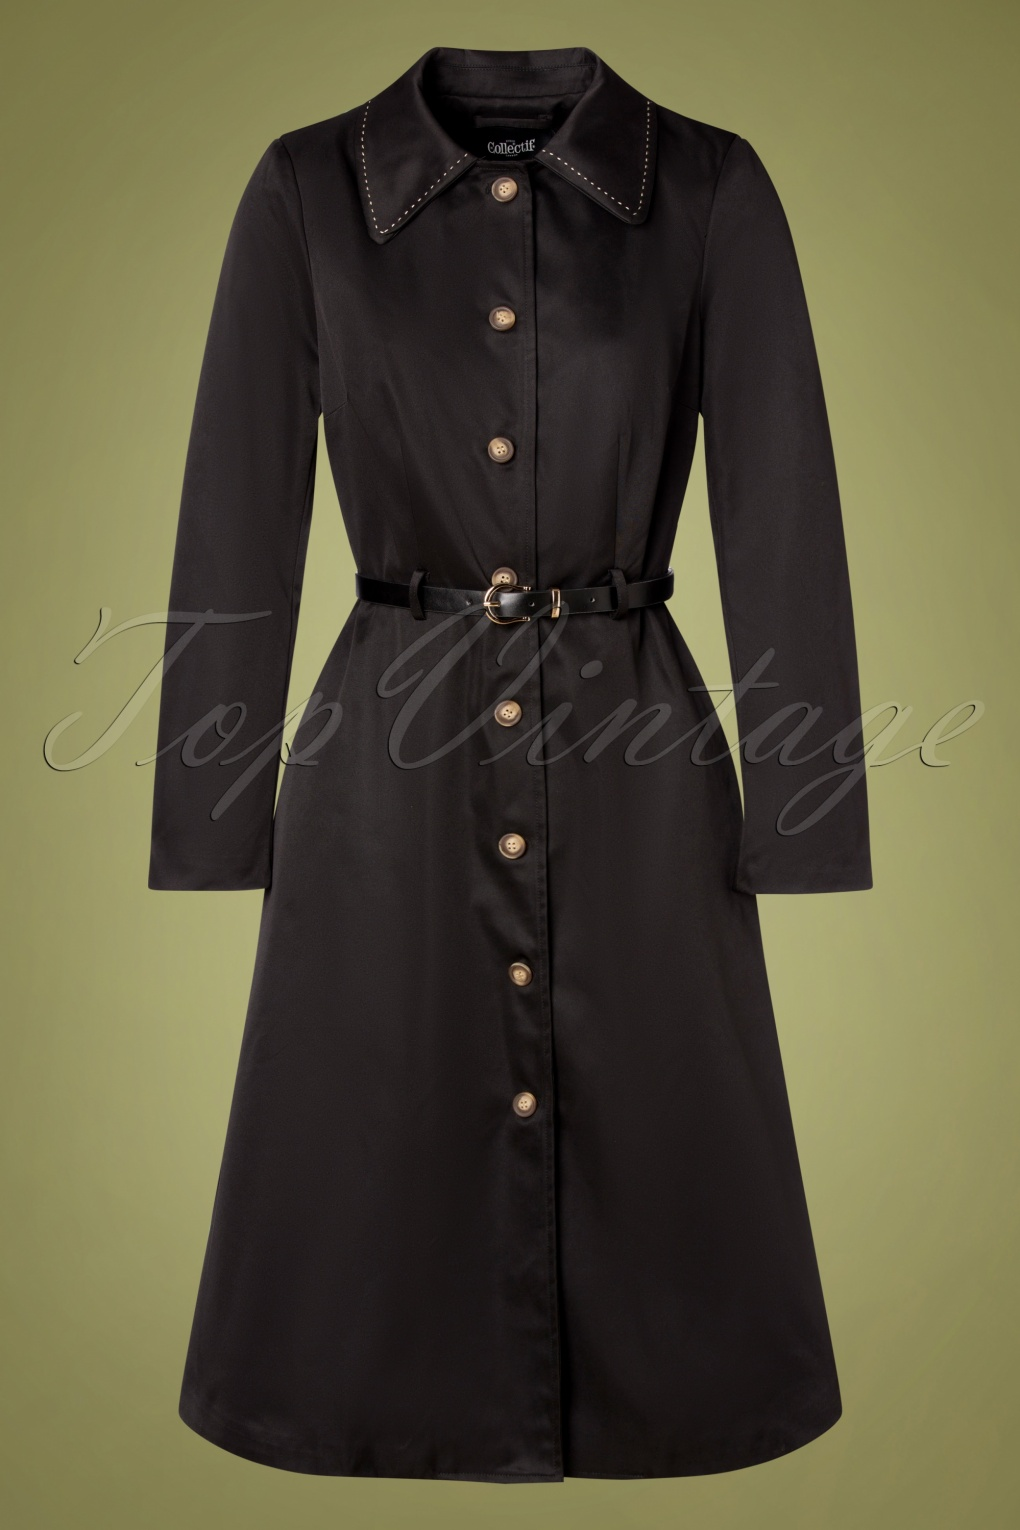 Shop Queen's Gambit Outfits – 60s Clothes 60s Kadence Trench Coat in Black £108.76 AT vintagedancer.com